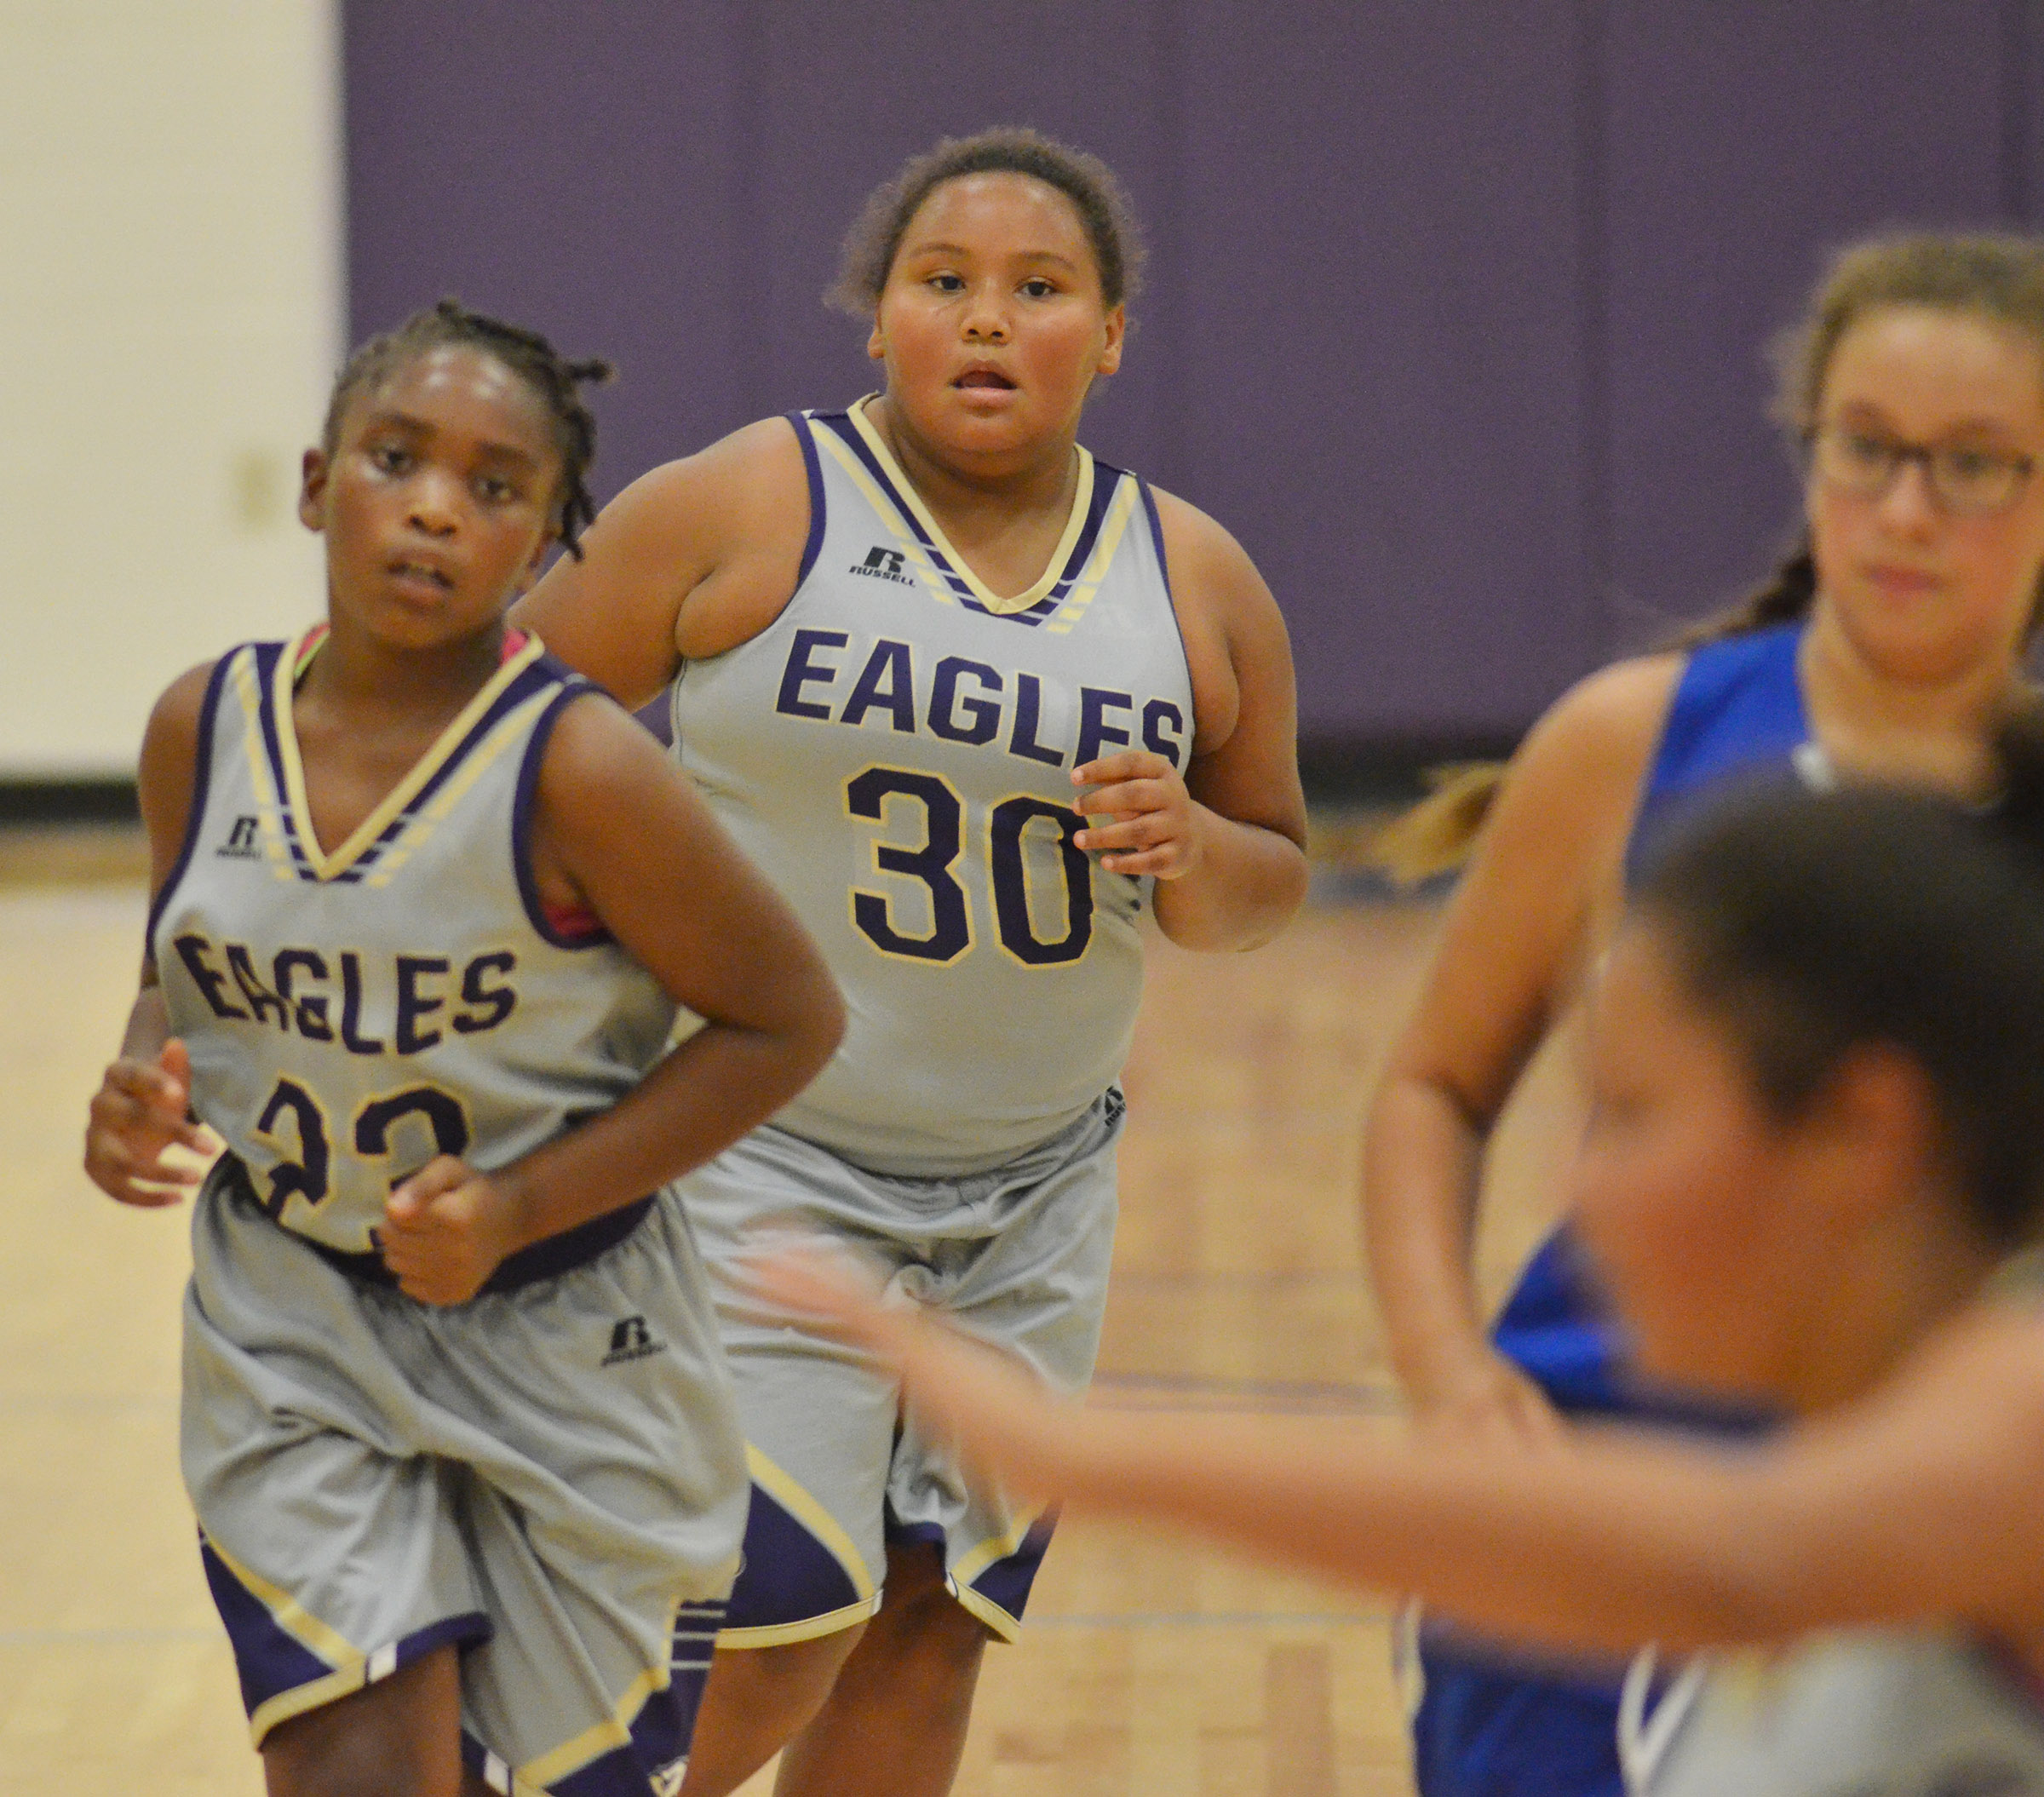 Campbellsville Elementary School fifth-grader Dezarae Washington runs down the court.